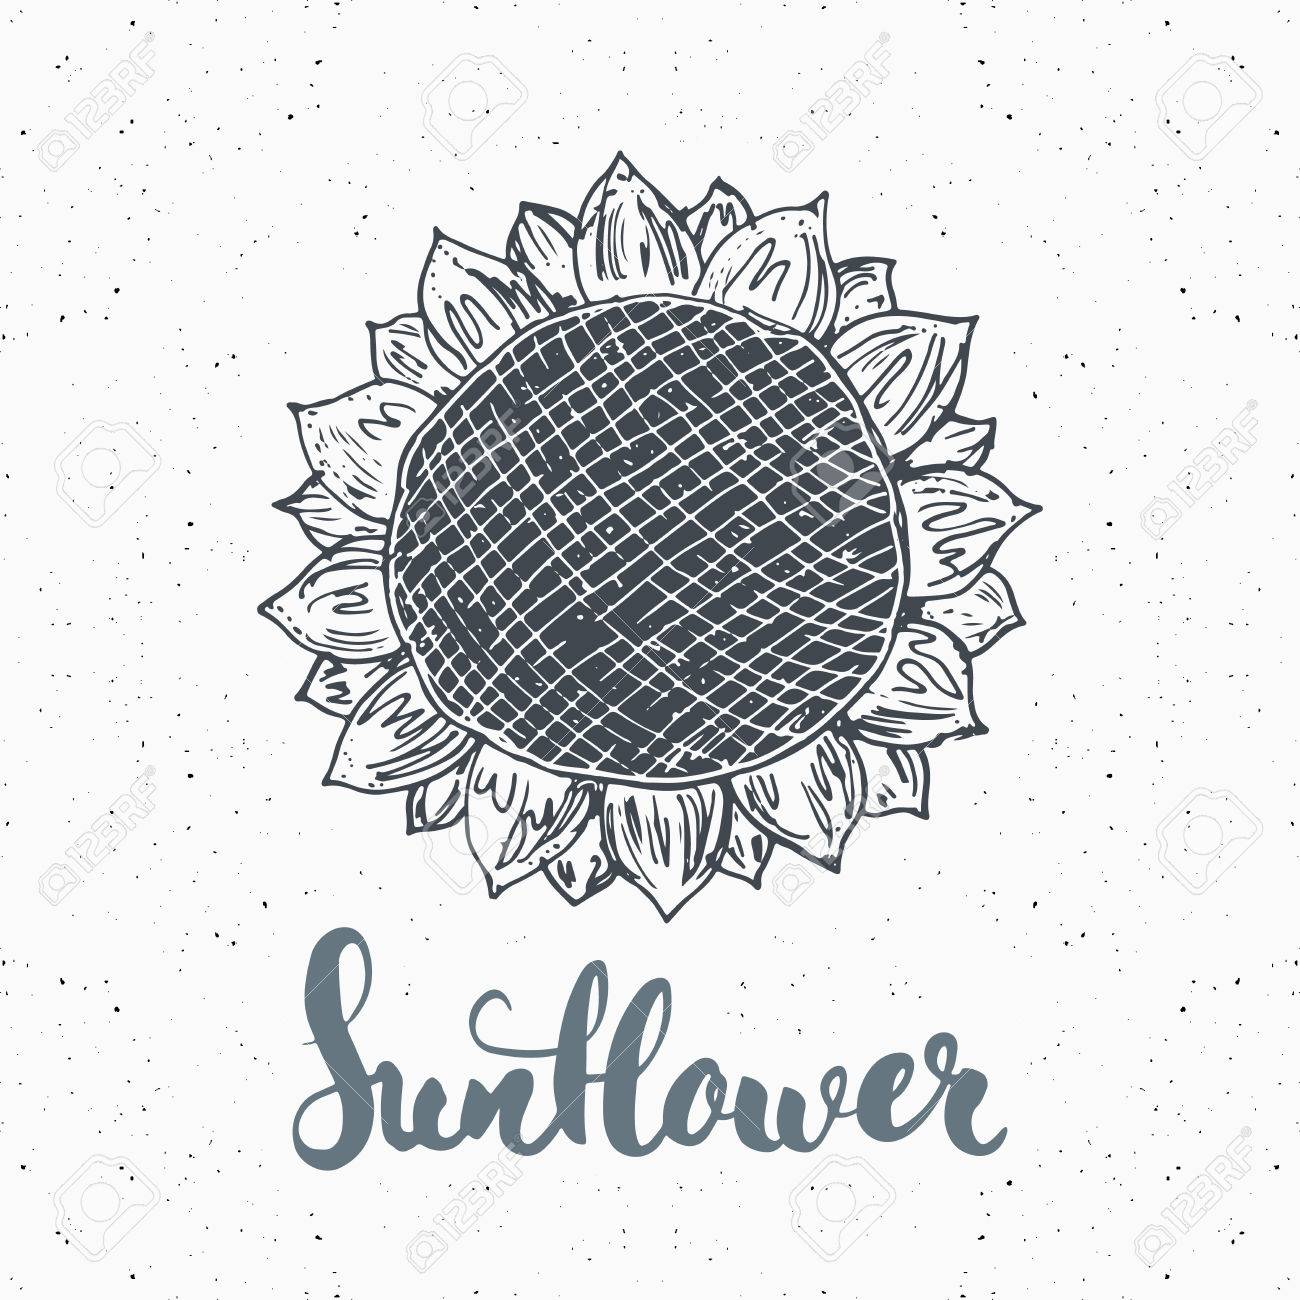 sunflower sketch with lettering vintage label hand drawn grunge